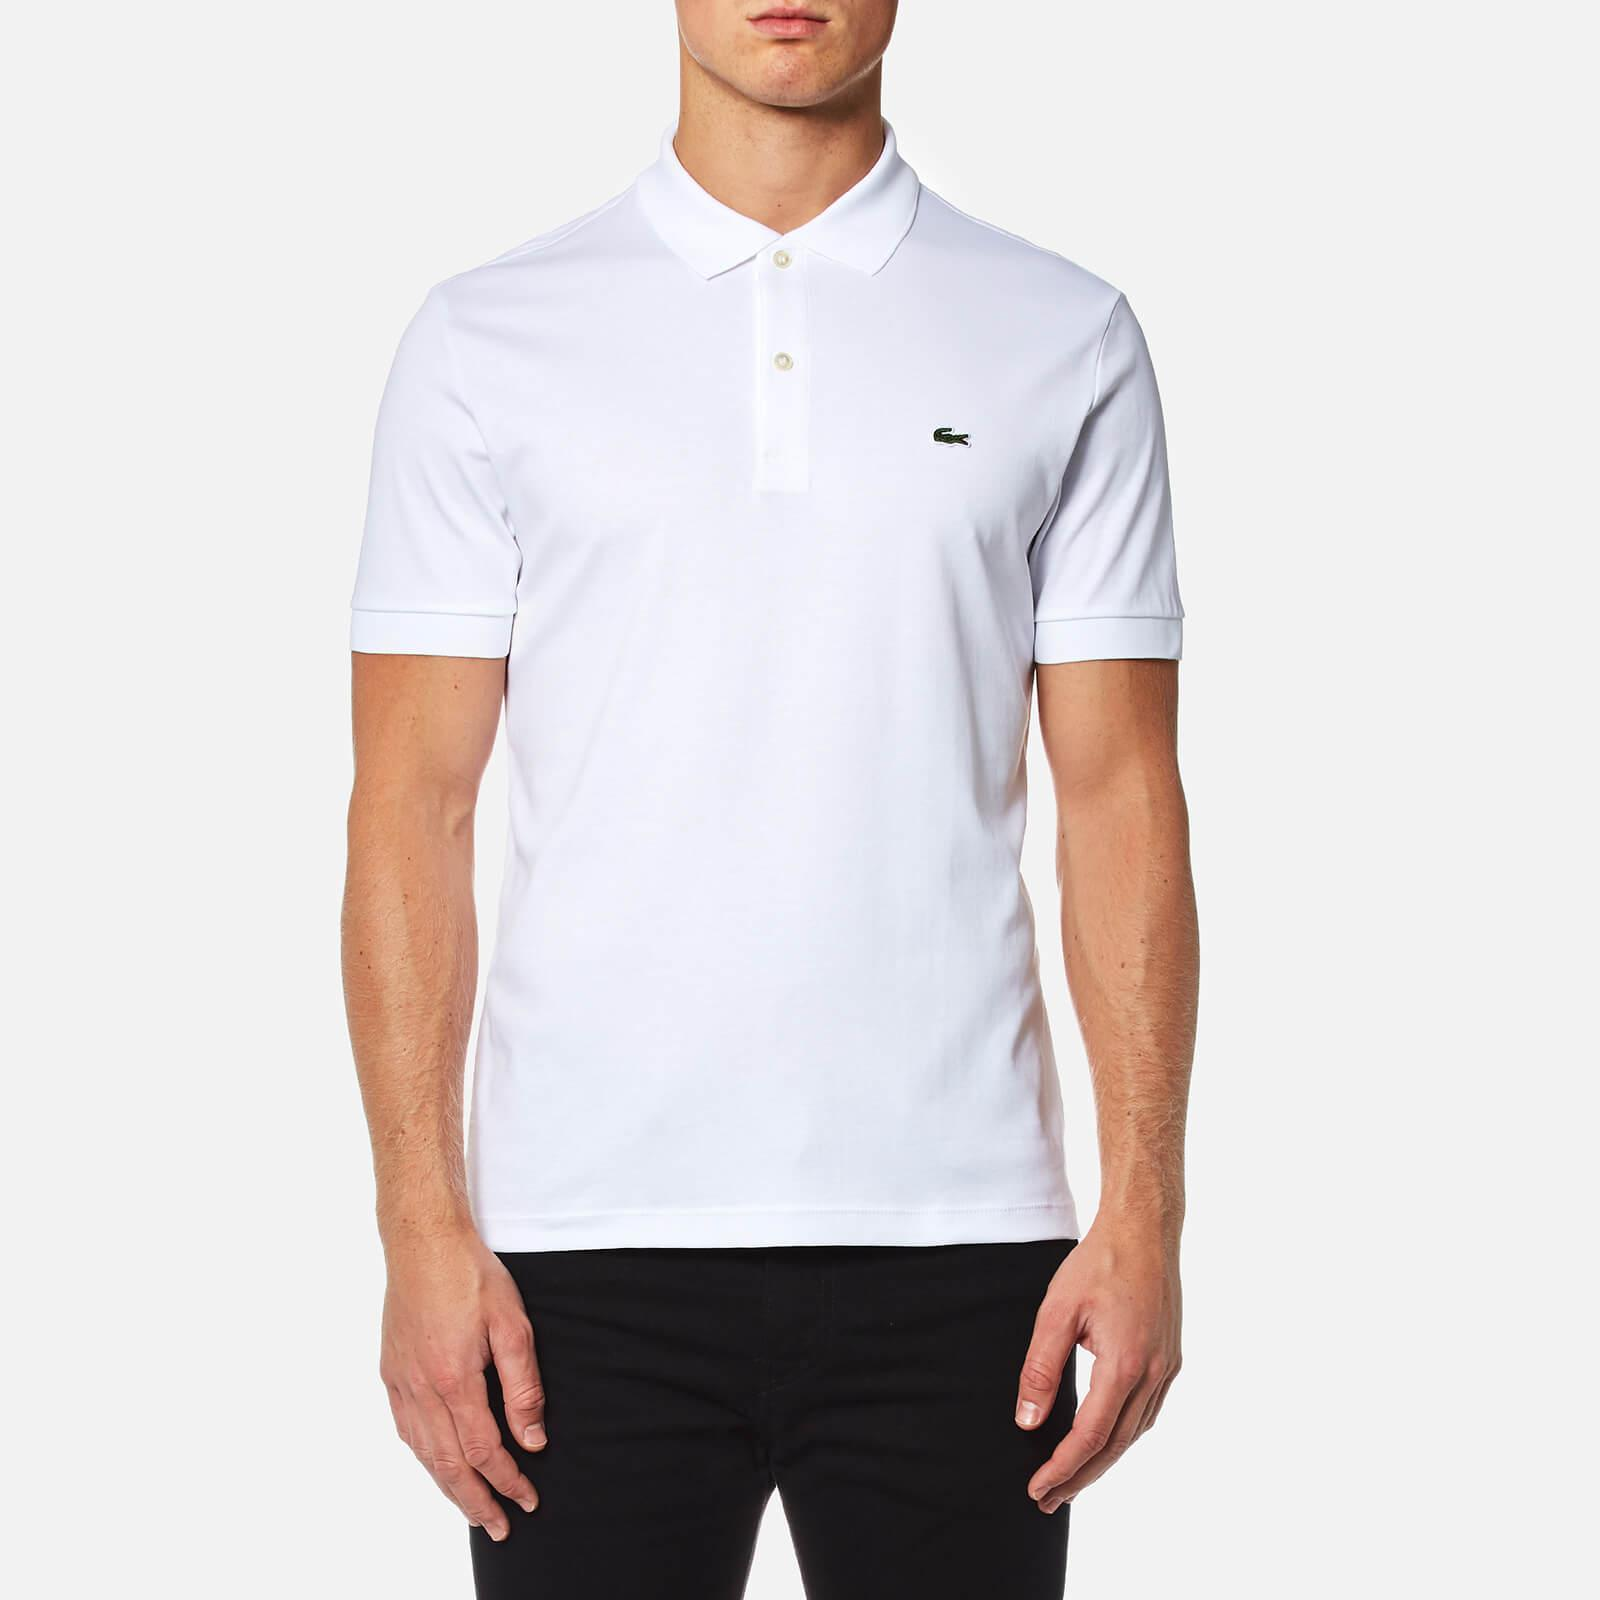 e942f36a9f2 Lacoste T Shirt Price In Pakistan